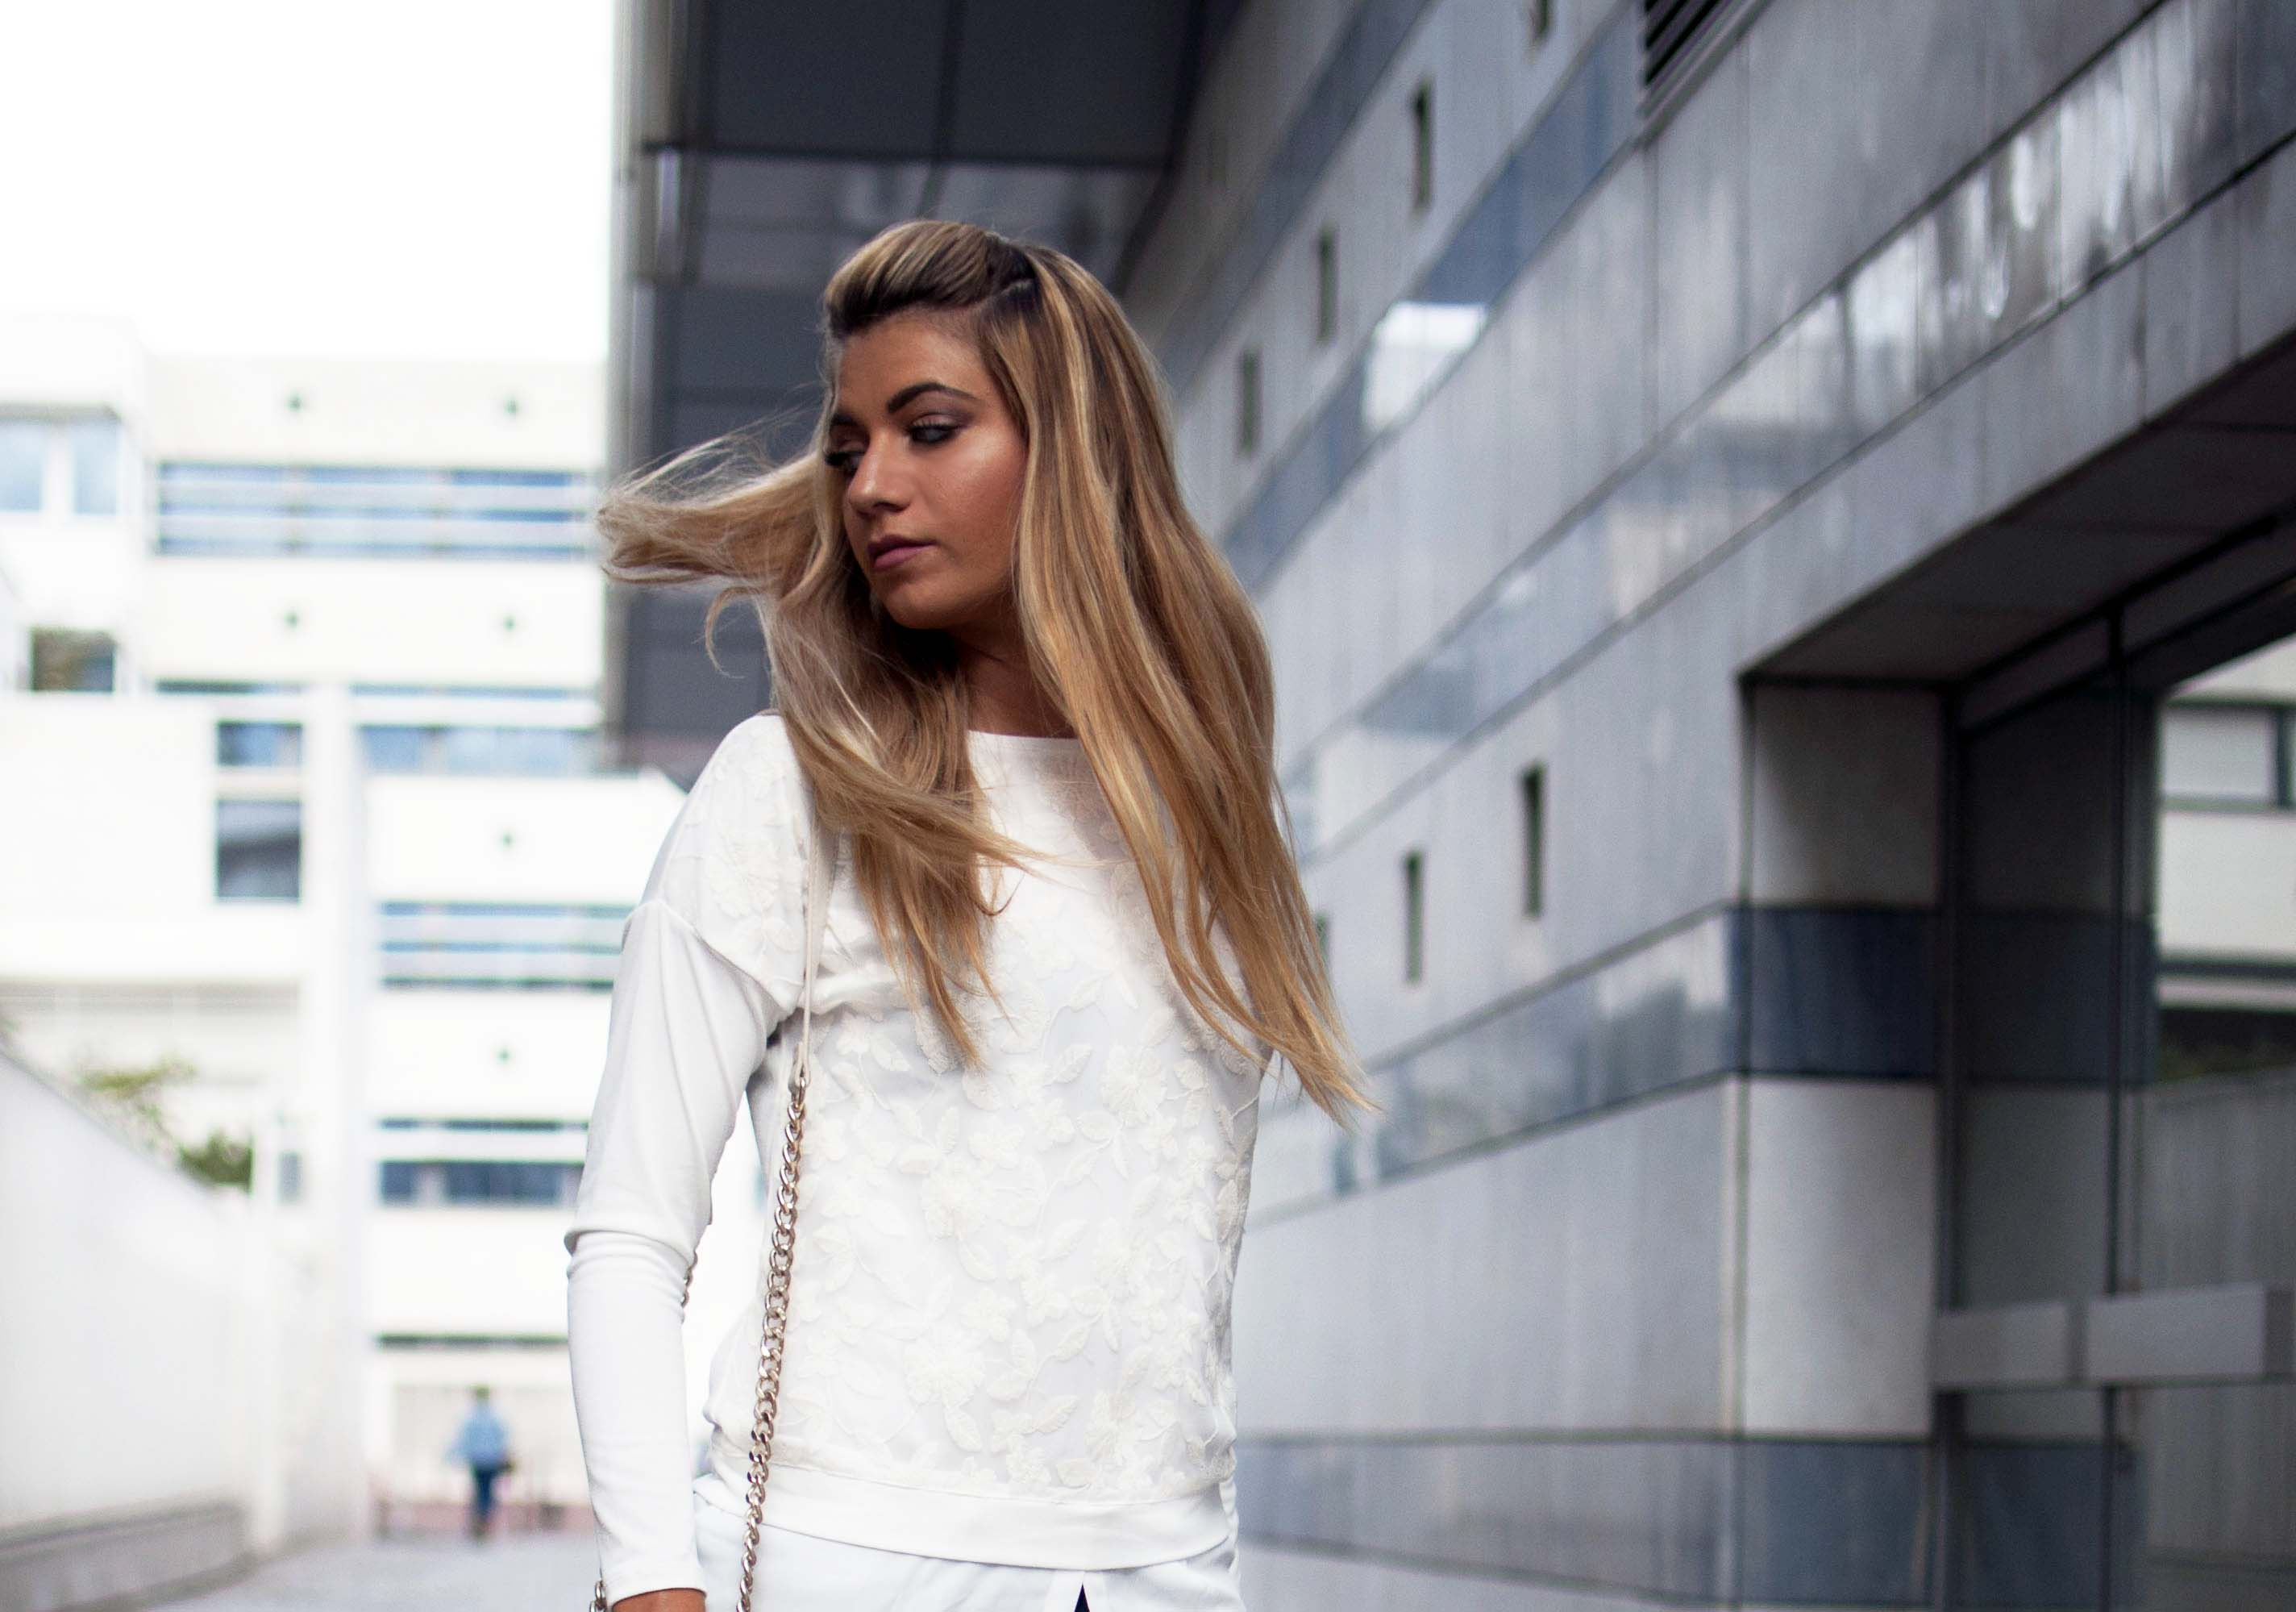 ootd-blond-blonde-blogger-outfit